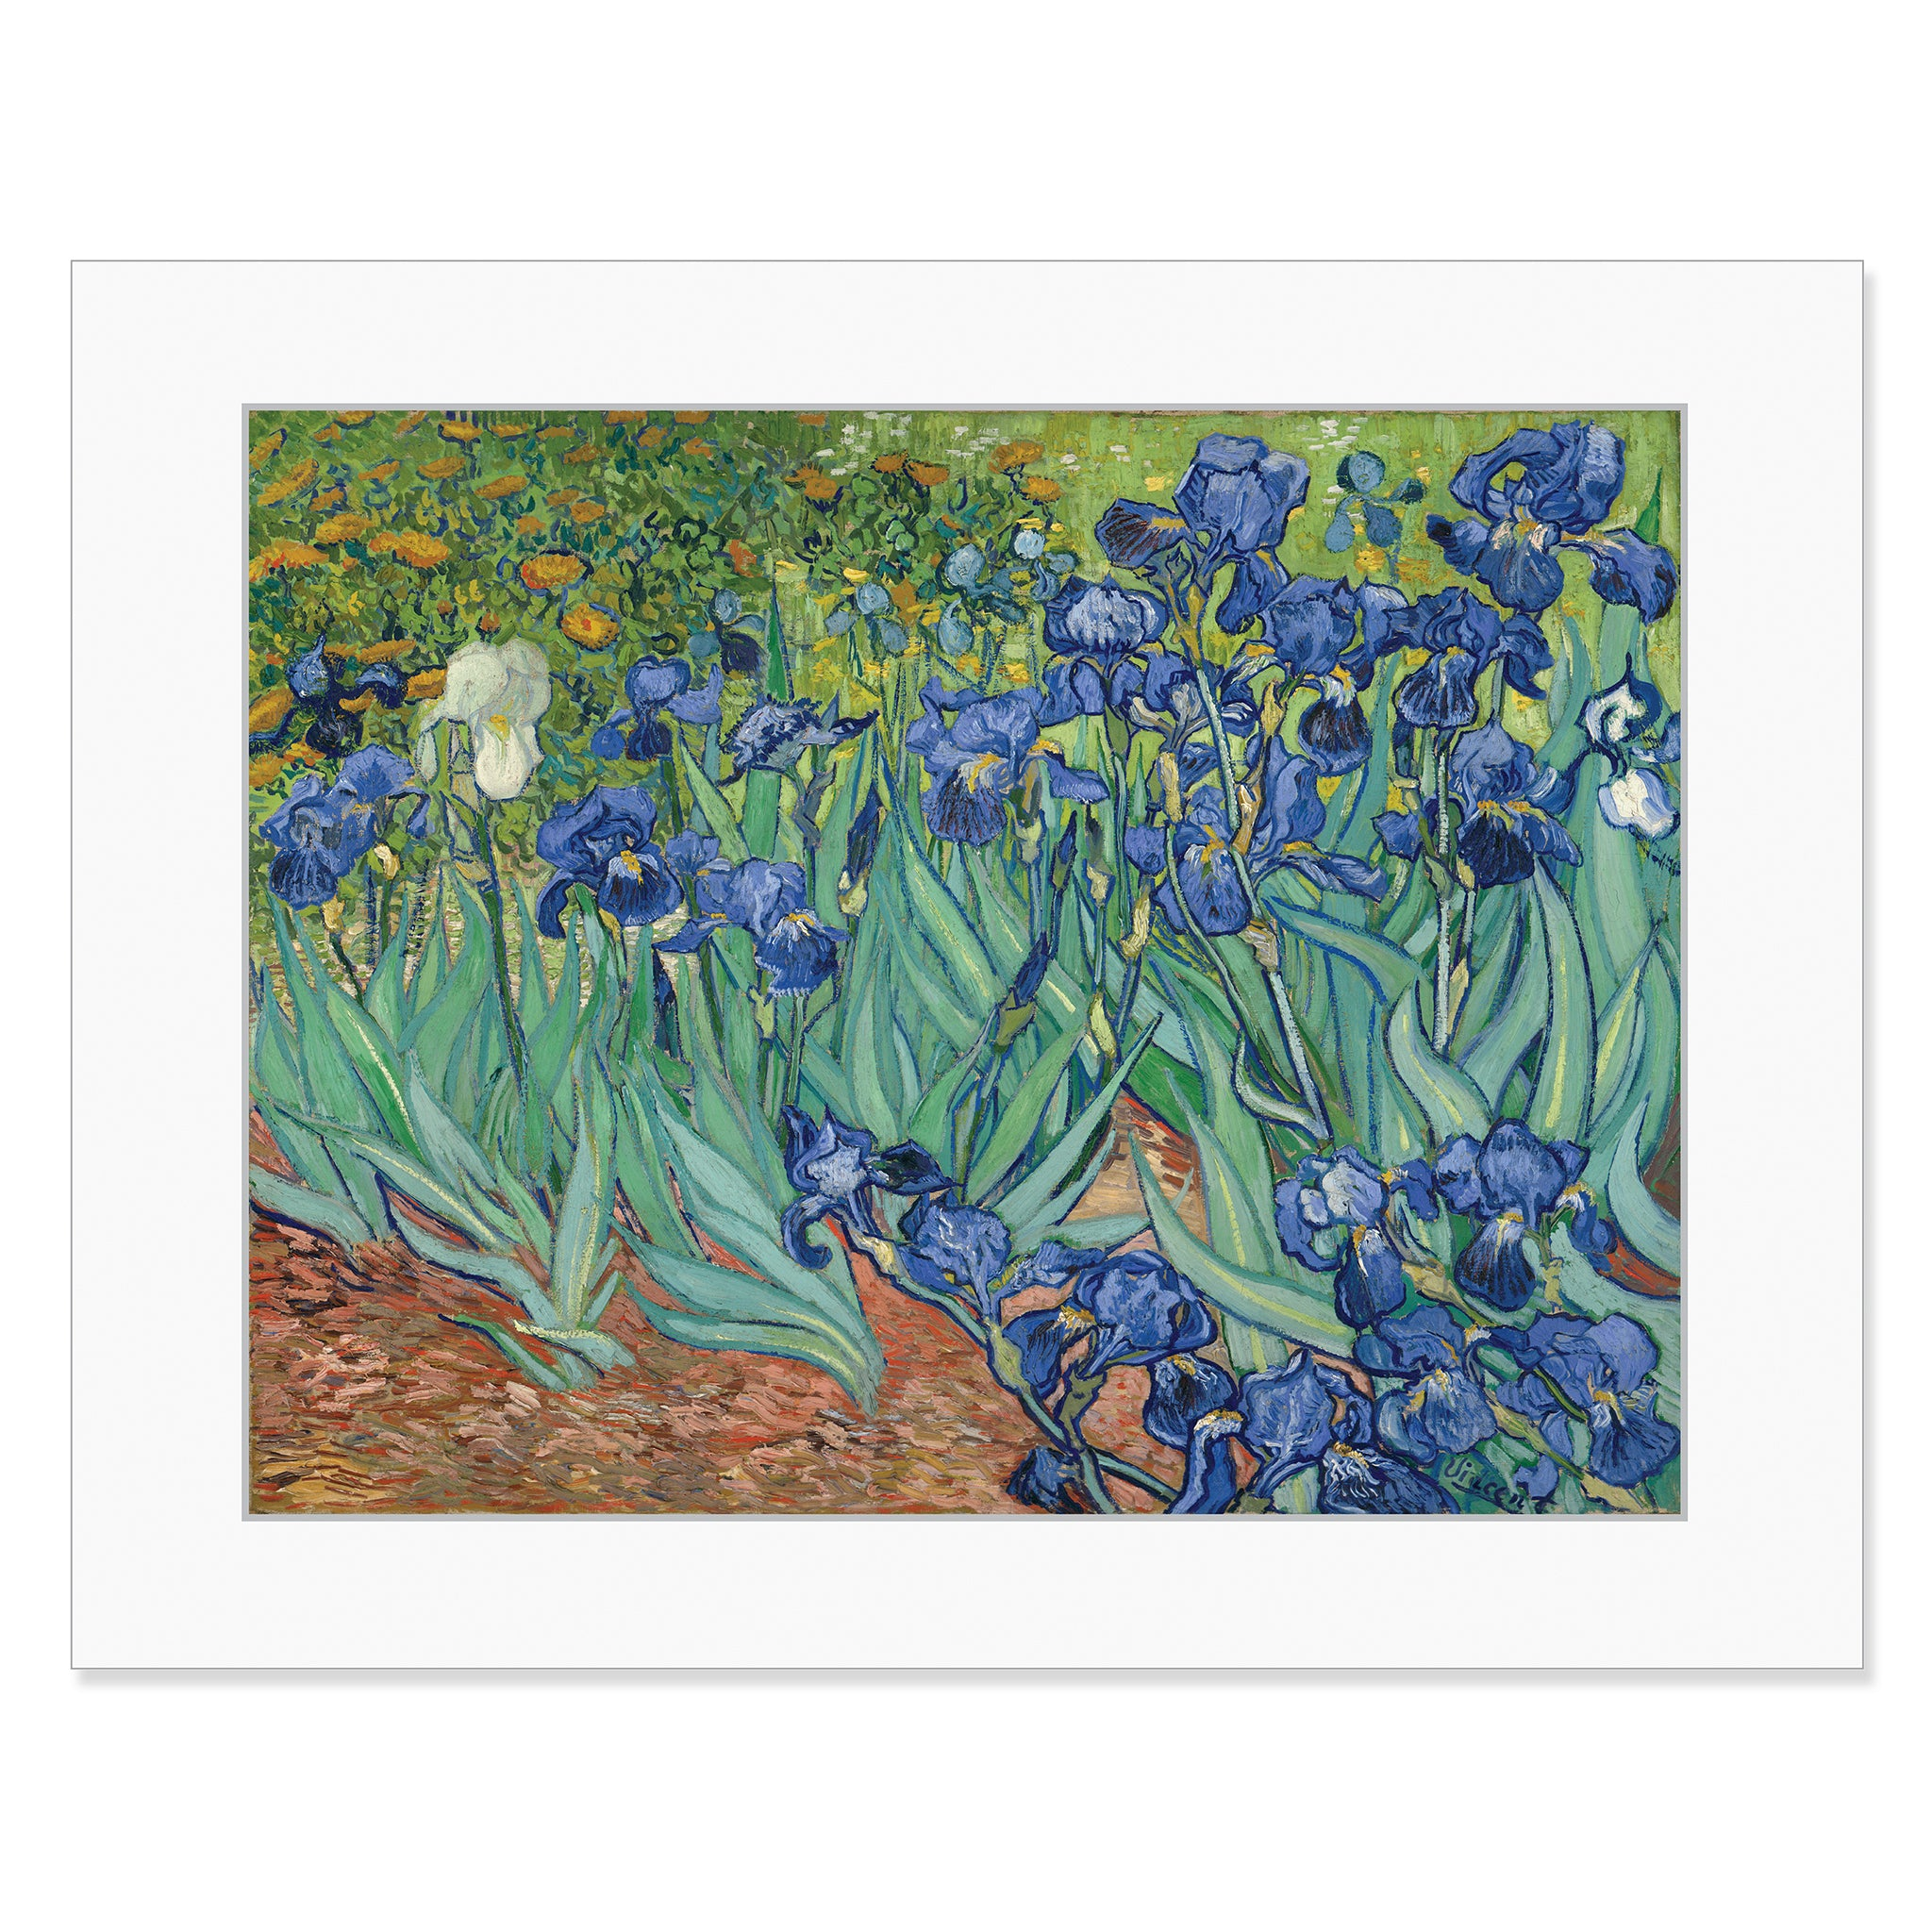 Van gogh irises 11 x 14 matted print the getty store van gogh irises 11 x 14 matted print reviewsmspy